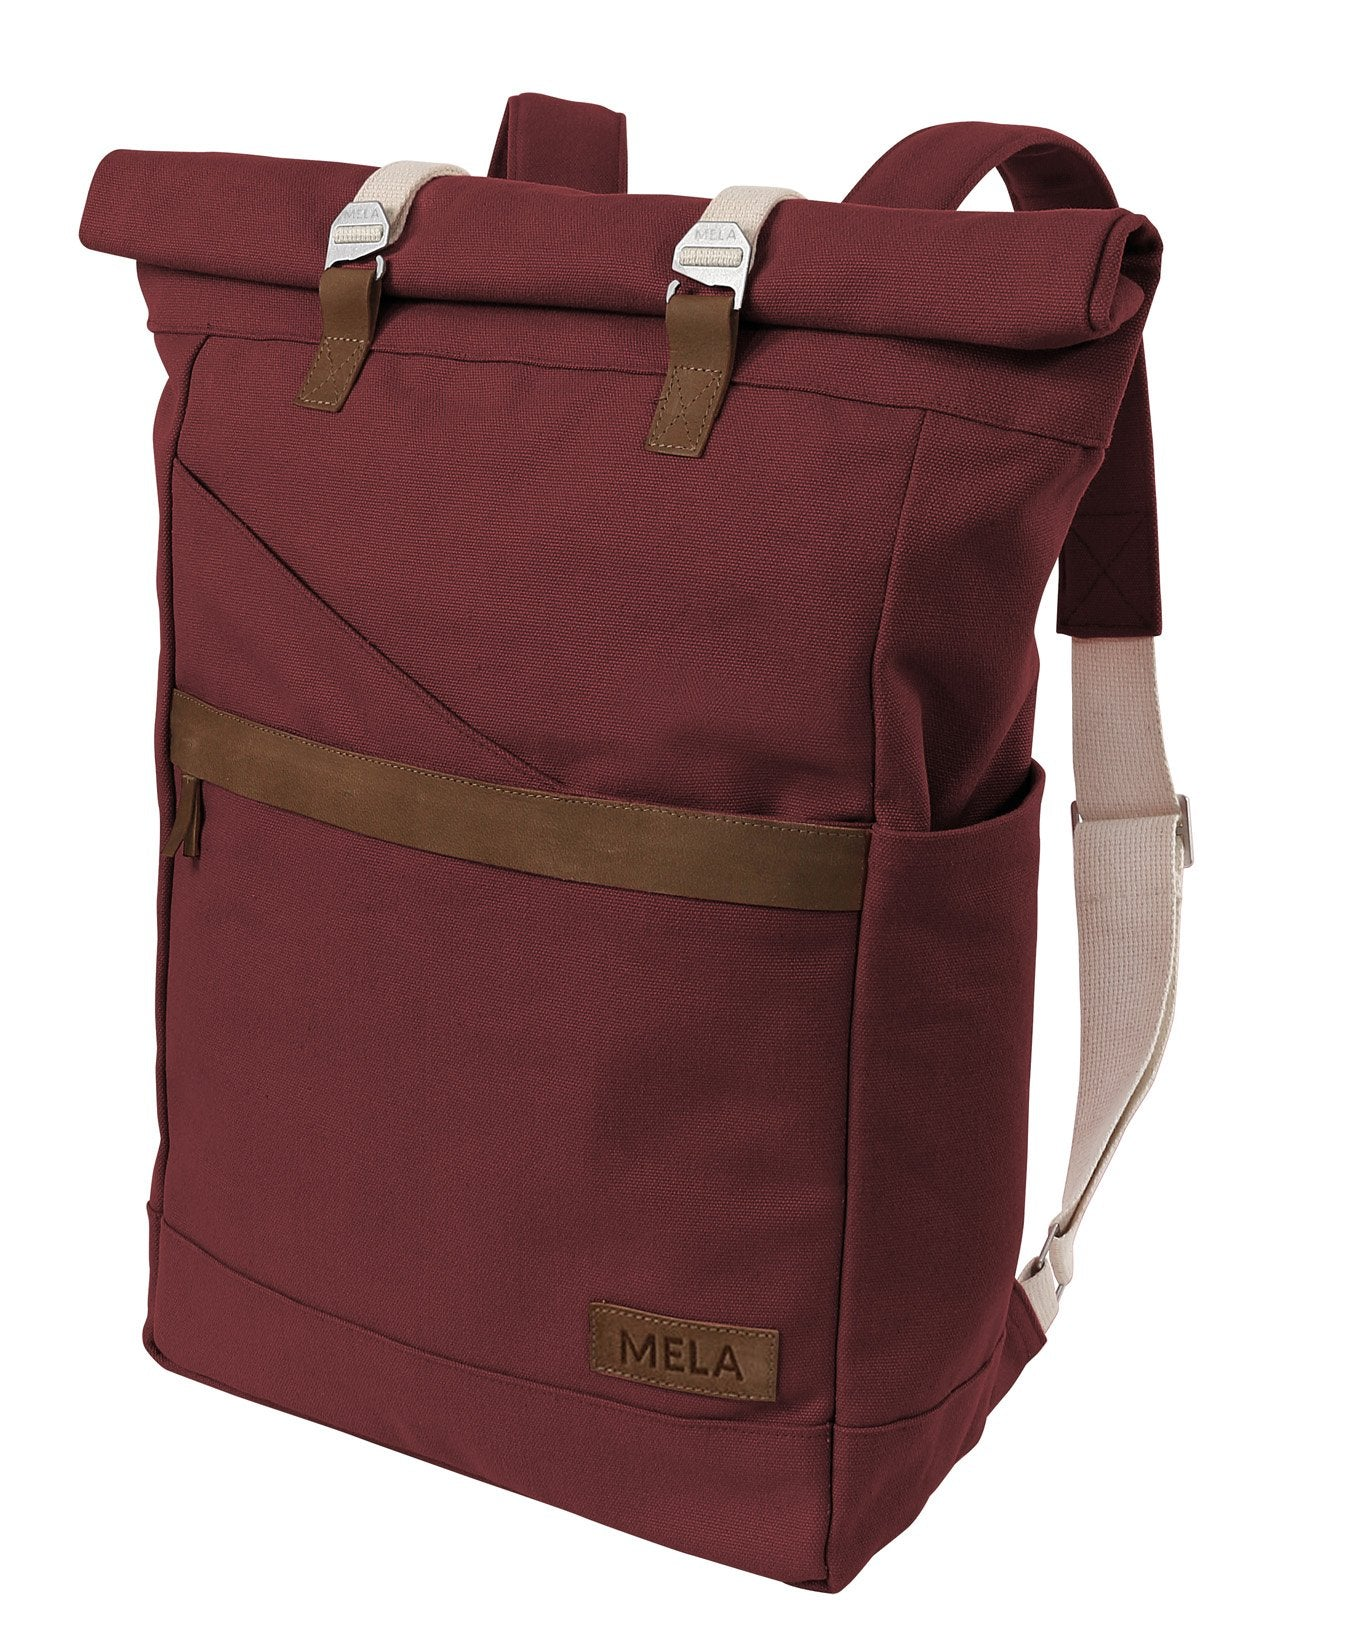 Backpack Ansvar I Burgundy Red - Komodo Fashion